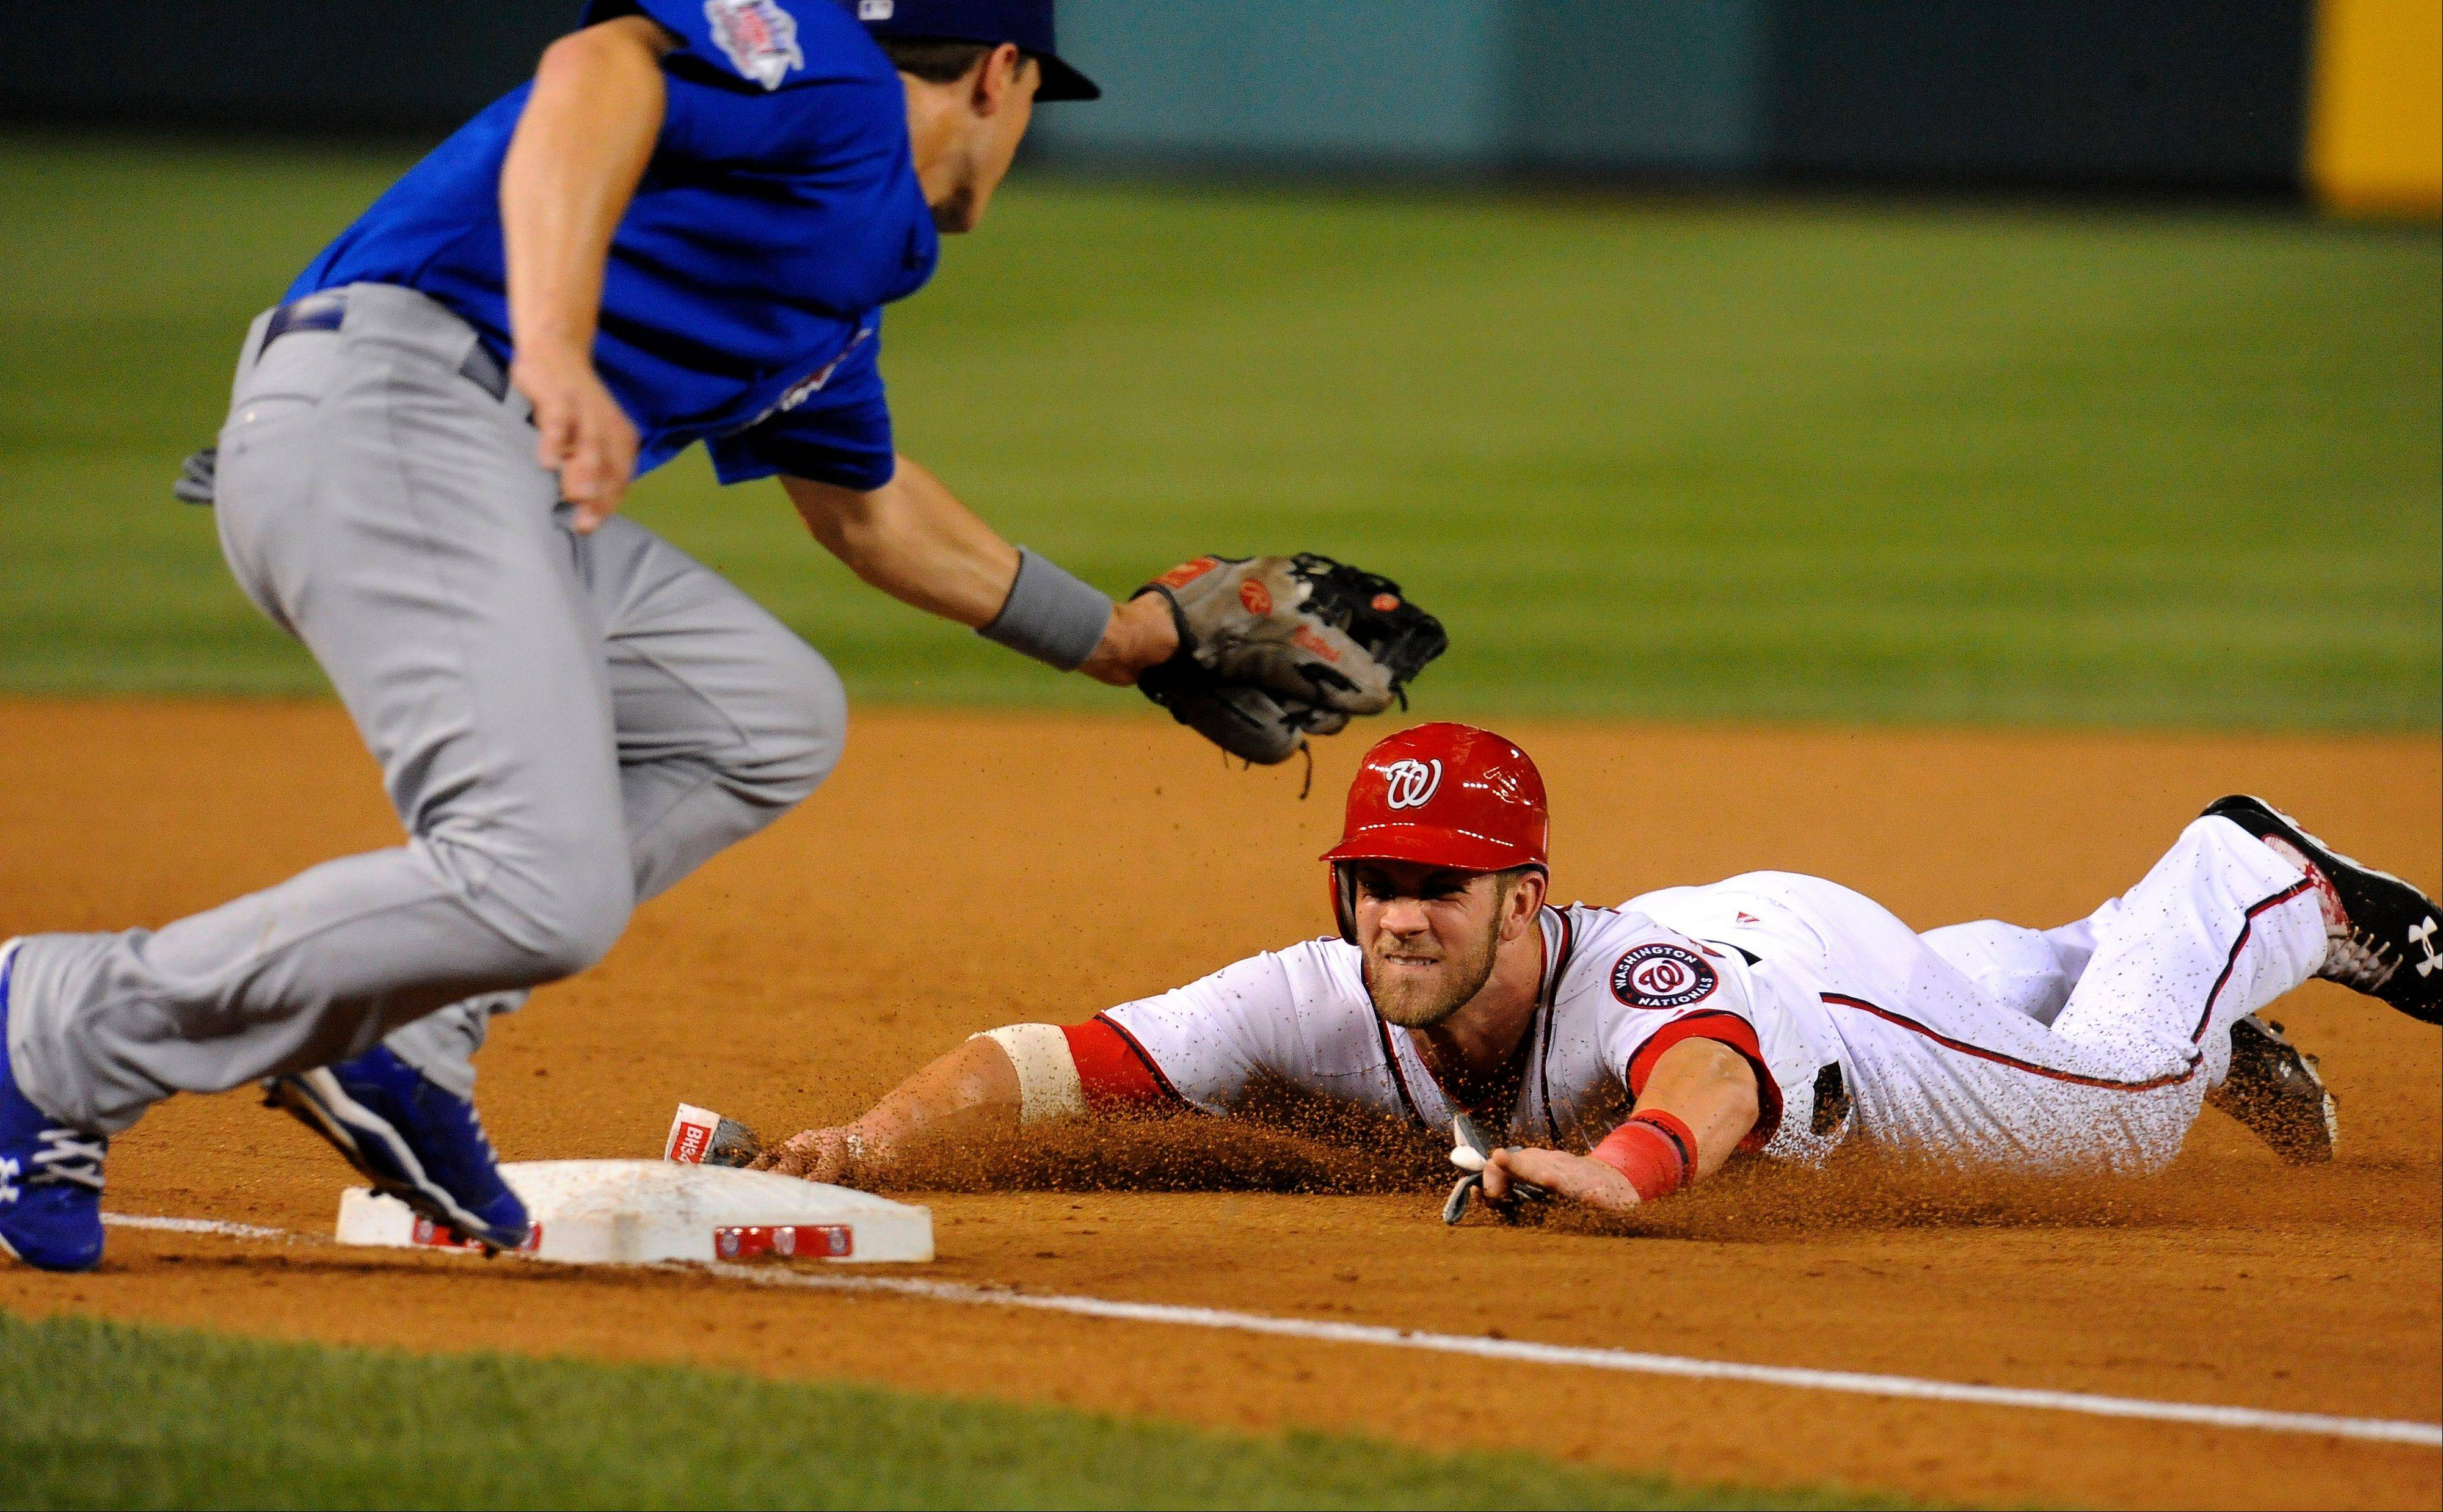 Washington Nationals outfielder Bryce Harper steals third base as the Cubs' Josh Vitters, left, applies a late tag during Tuesday's seventh inning.